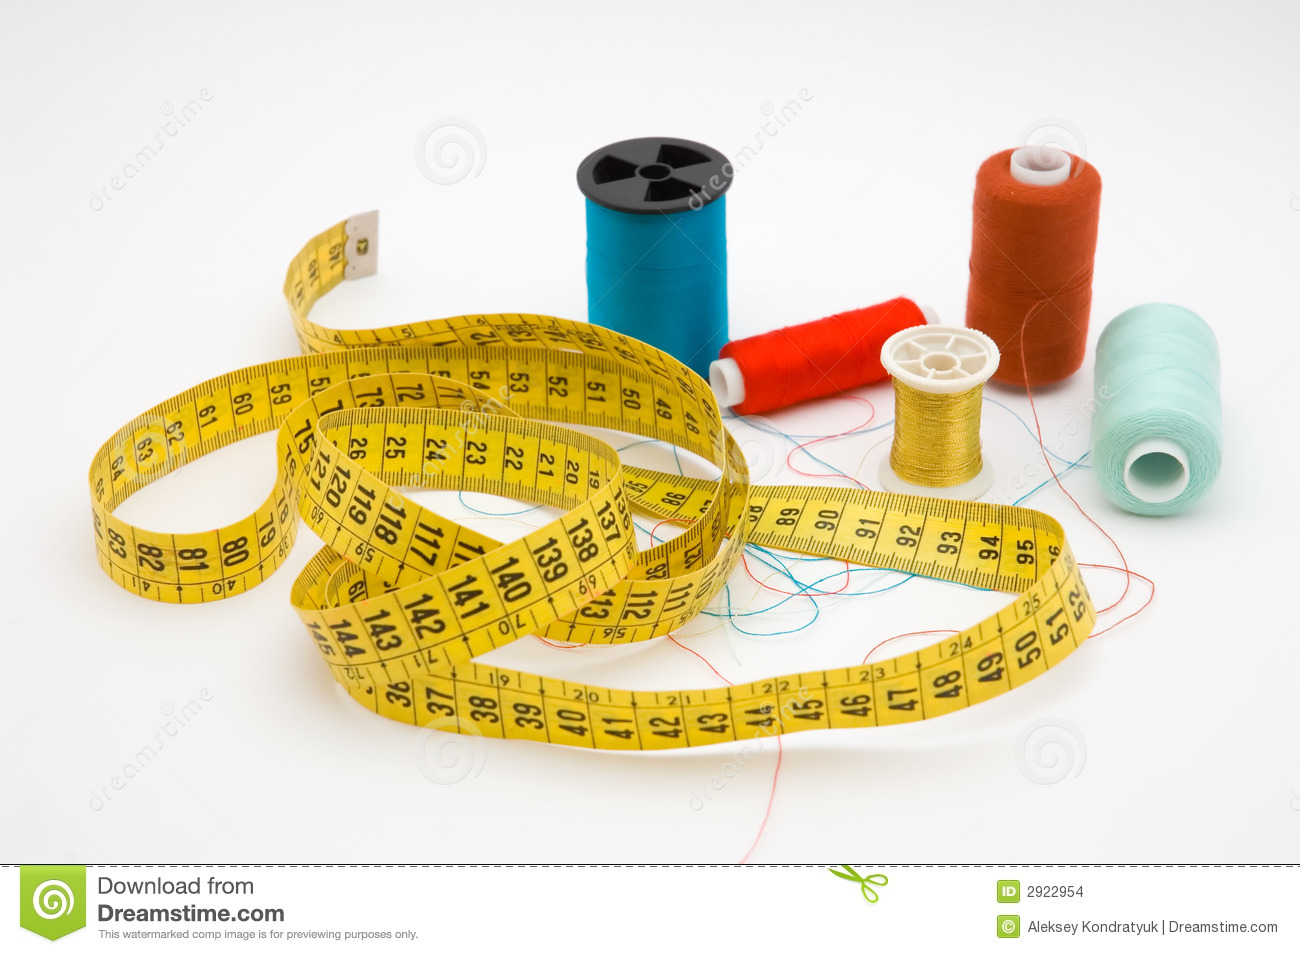 Seamstress tools stock photo. Image of ruler, cabbage ...